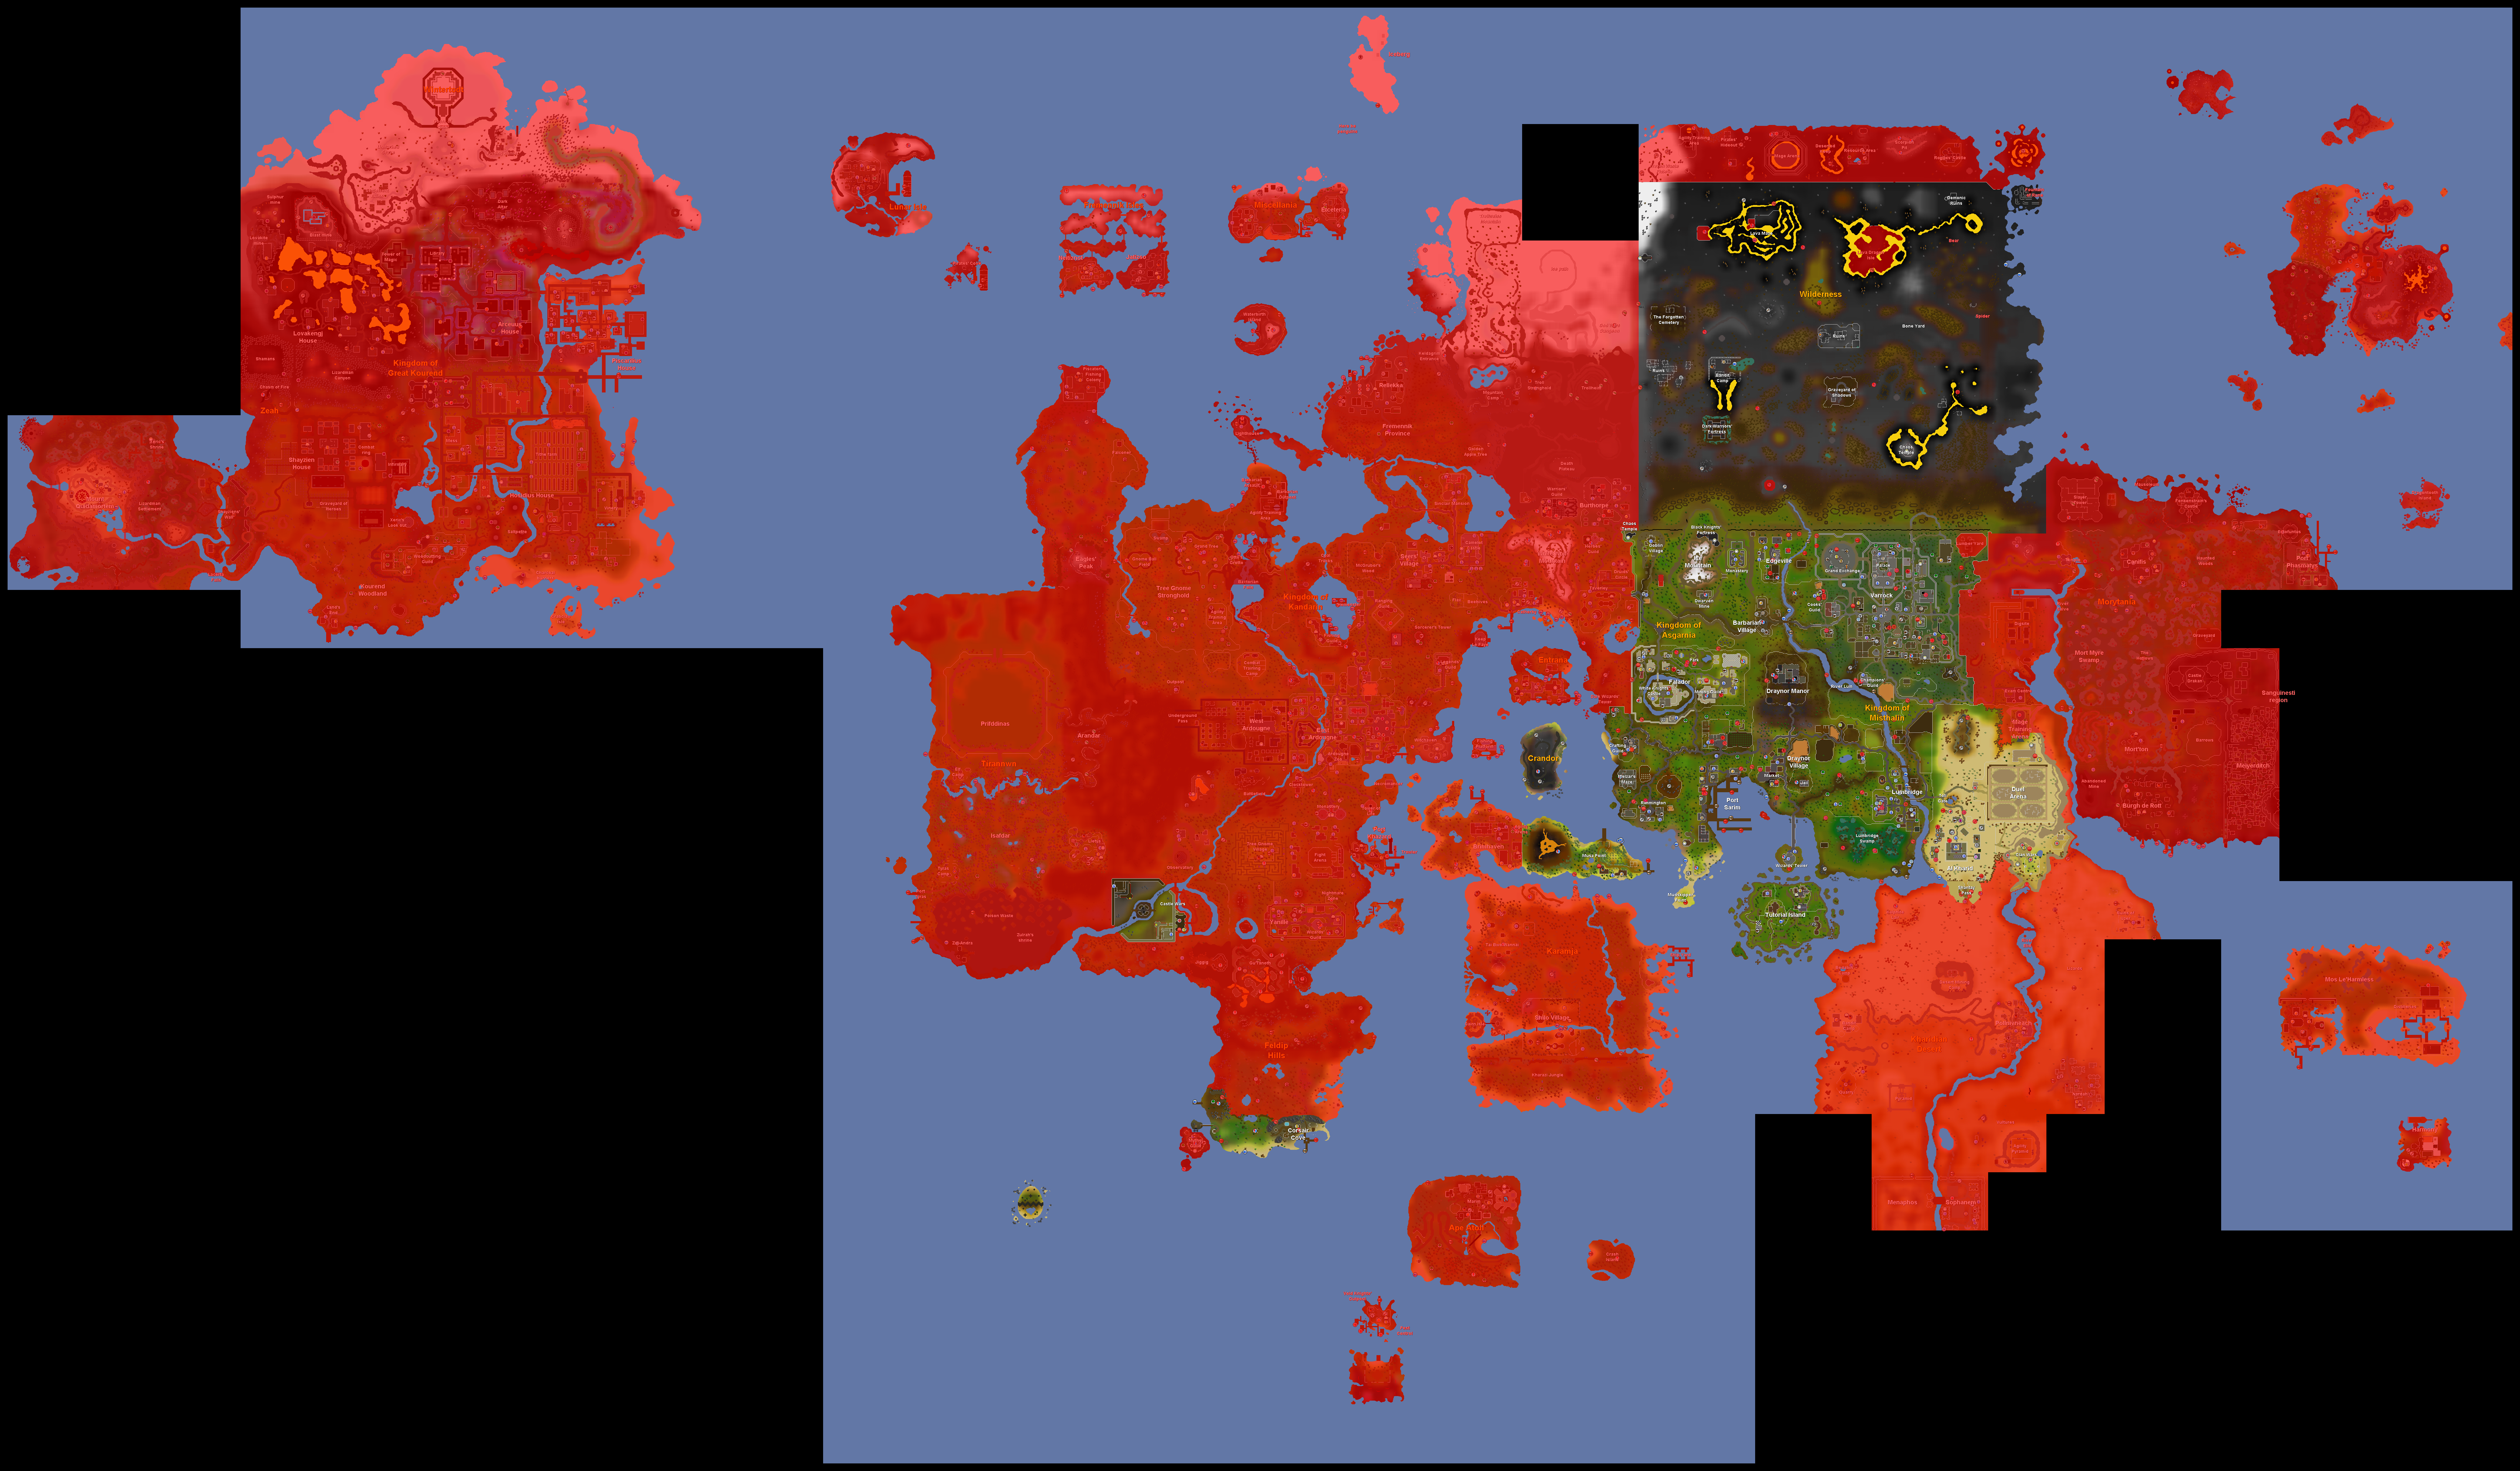 Free to play old school runescape wiki fandom powered by wikia free to play areas and activities highlighted on the world map pay to play areas and activities in red gumiabroncs Choice Image